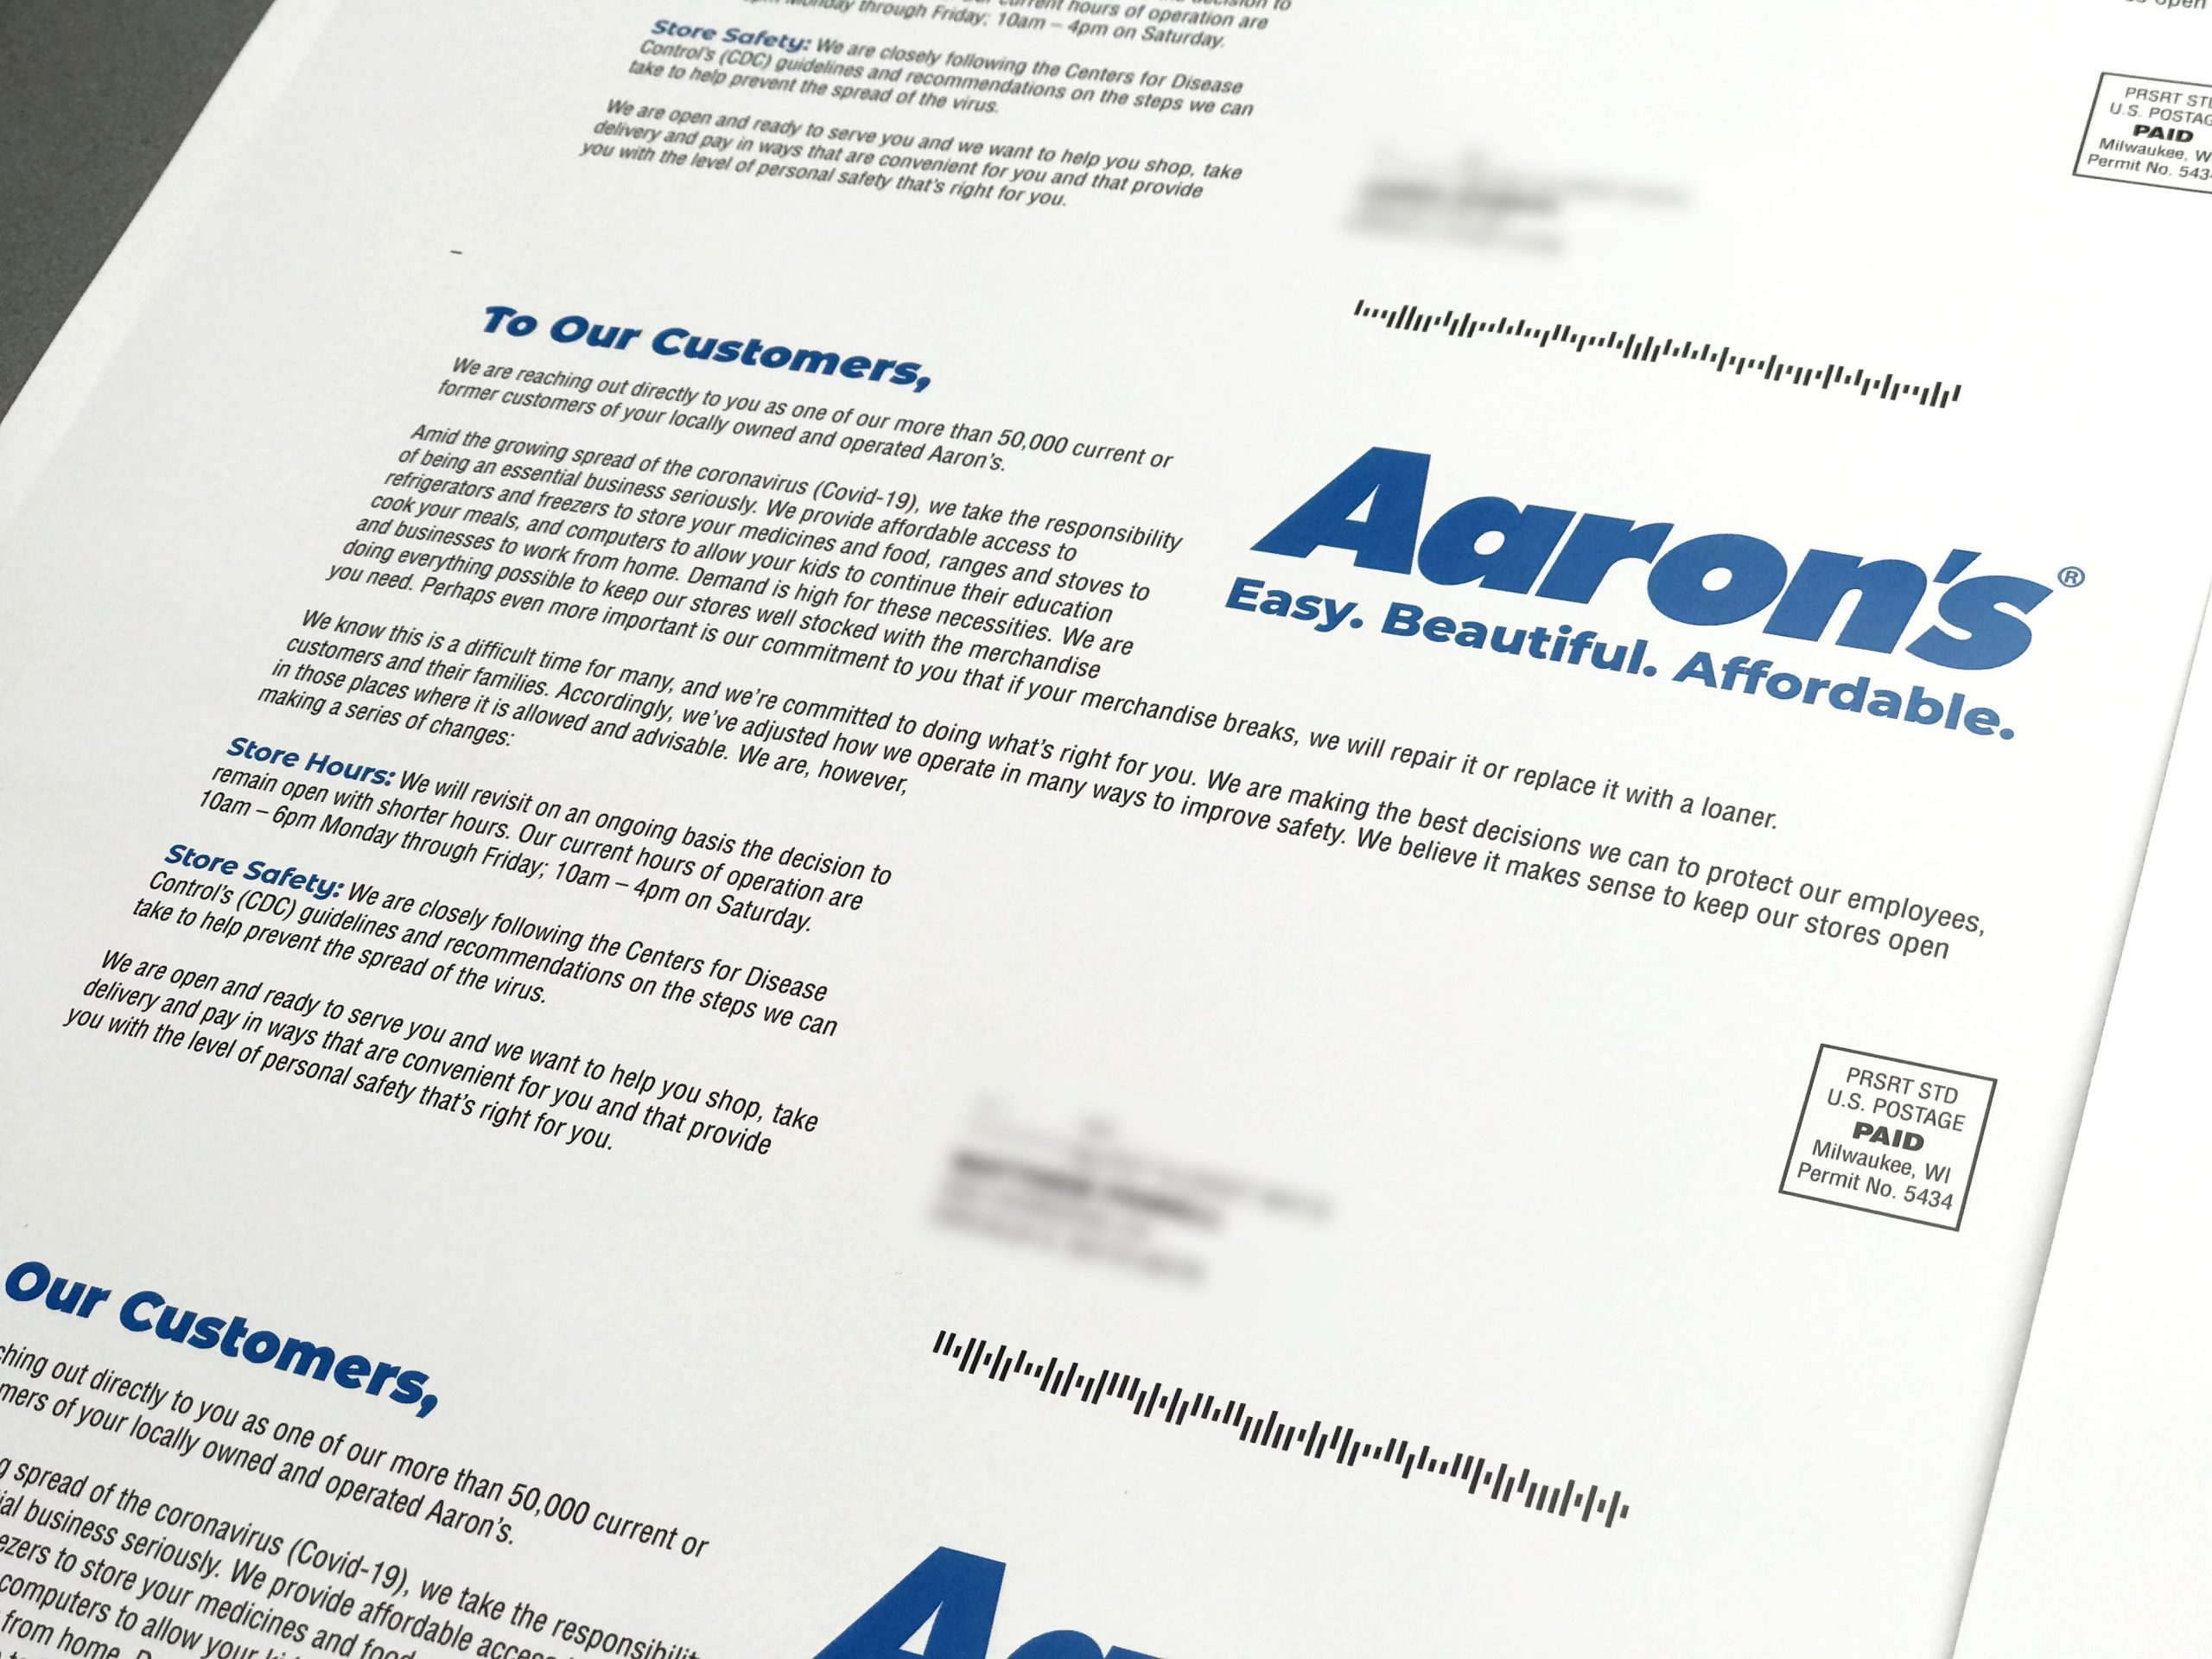 Aaron's personalized direct mail letter